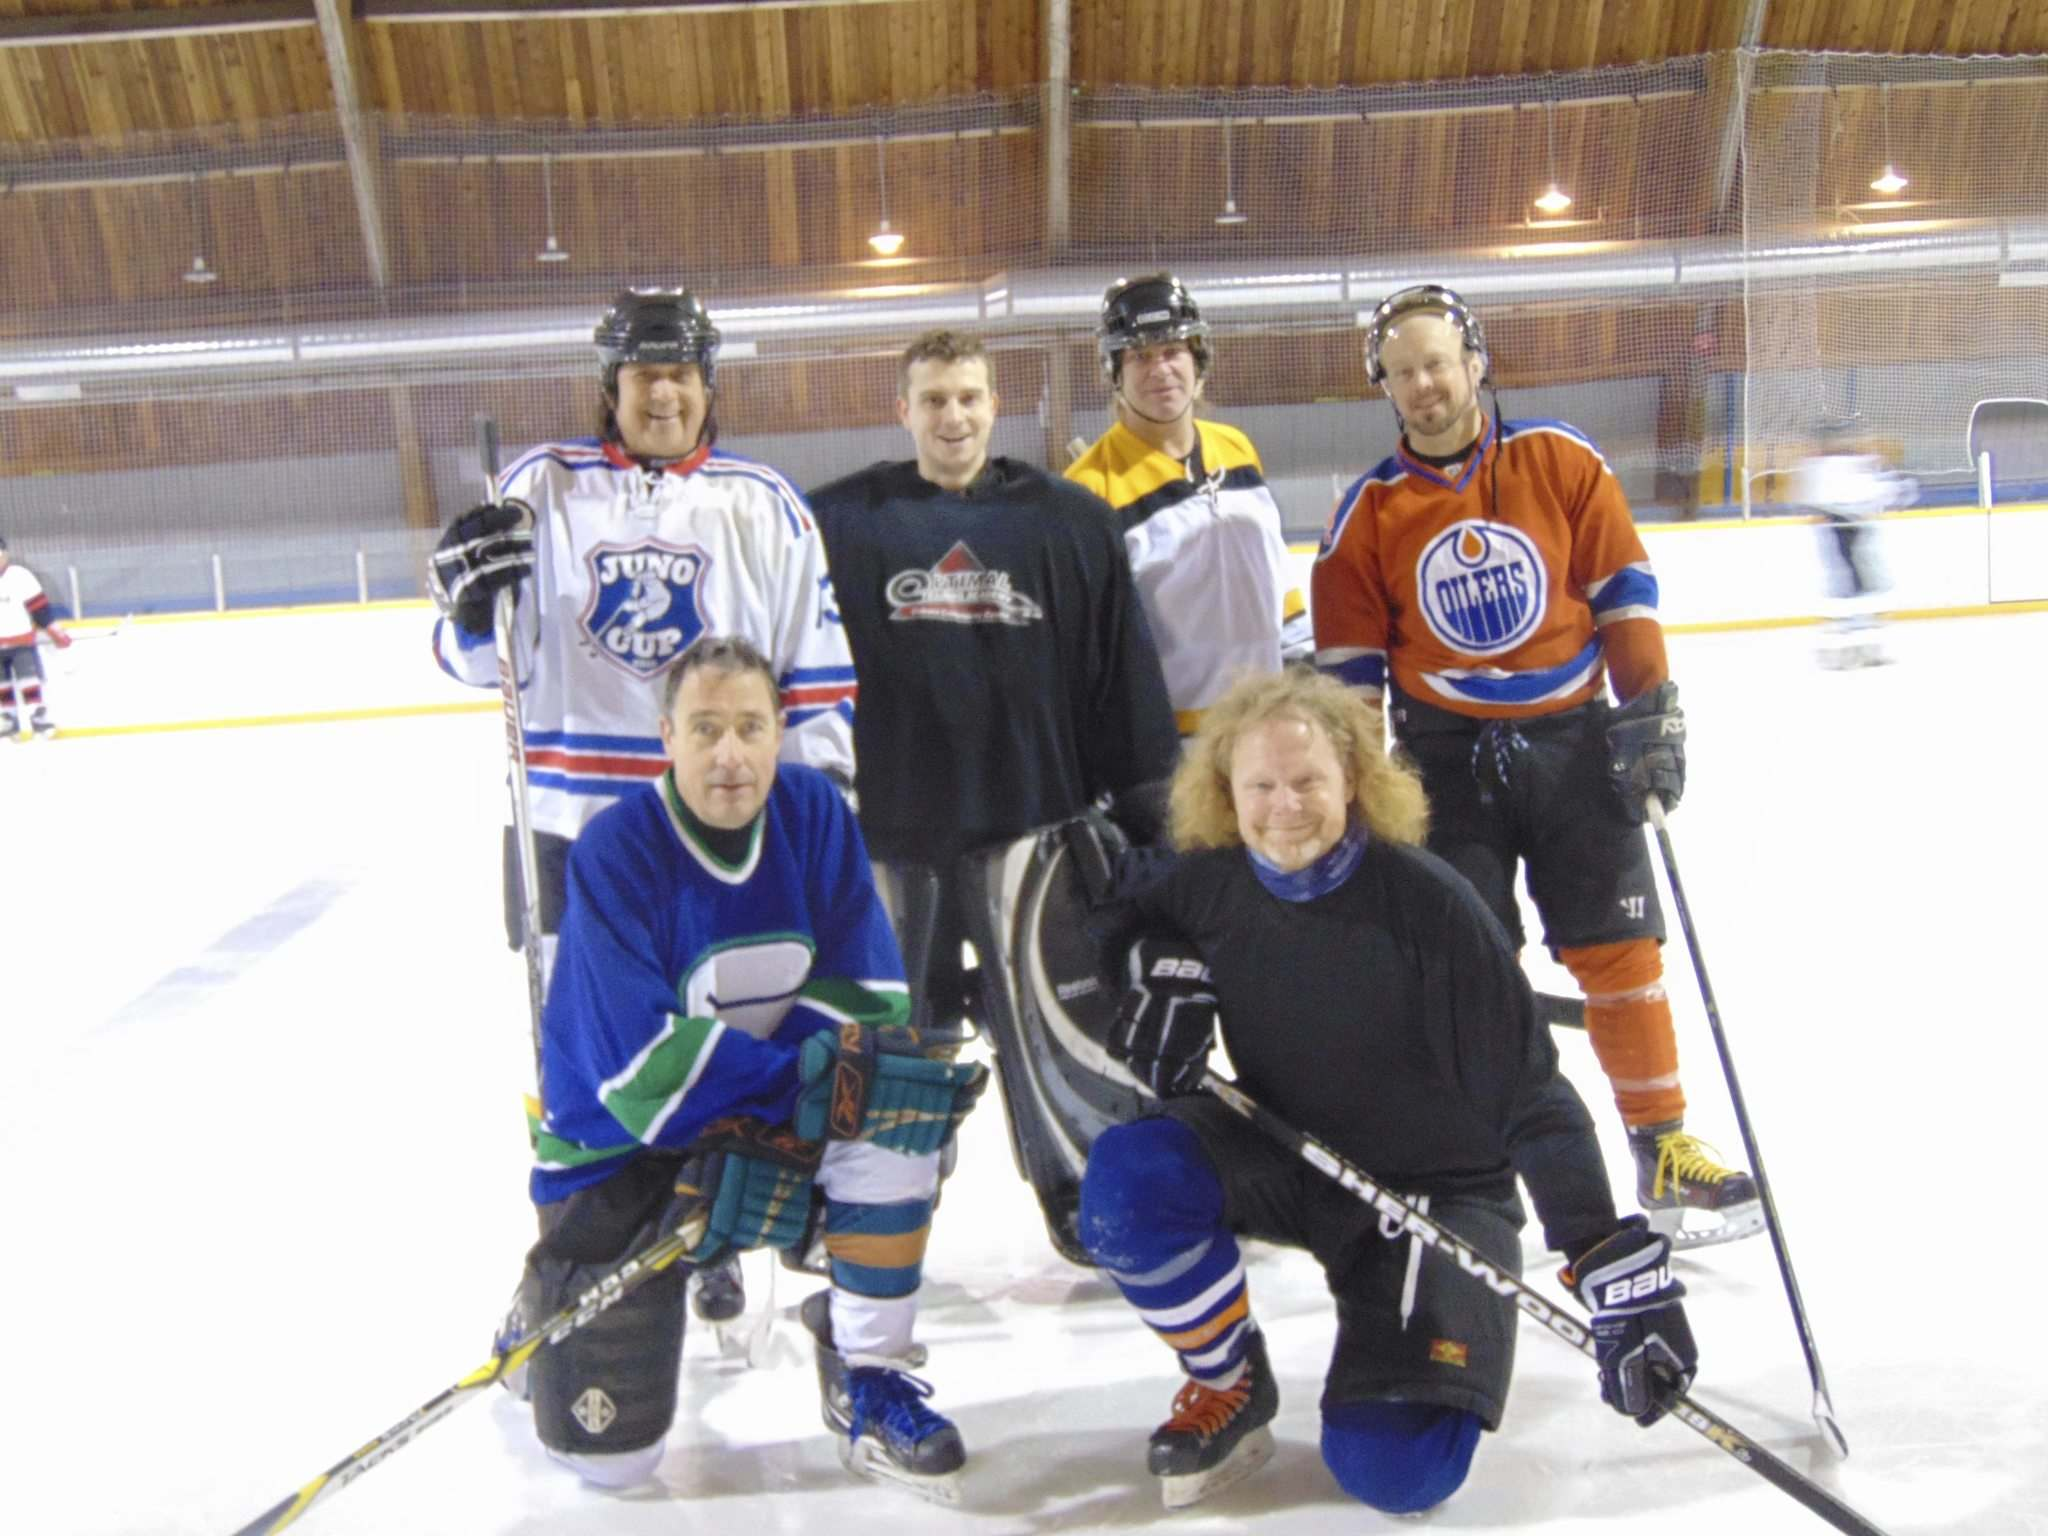 SUPPLIED</p><p>Musicians&#39; hockey team members. Back row, from left: Vince Fontaine, Kevon Cronin, Robb Oades, Kevin Radonsky. Front row, from left: Scotty Grainger, Rod Hussey.</p>